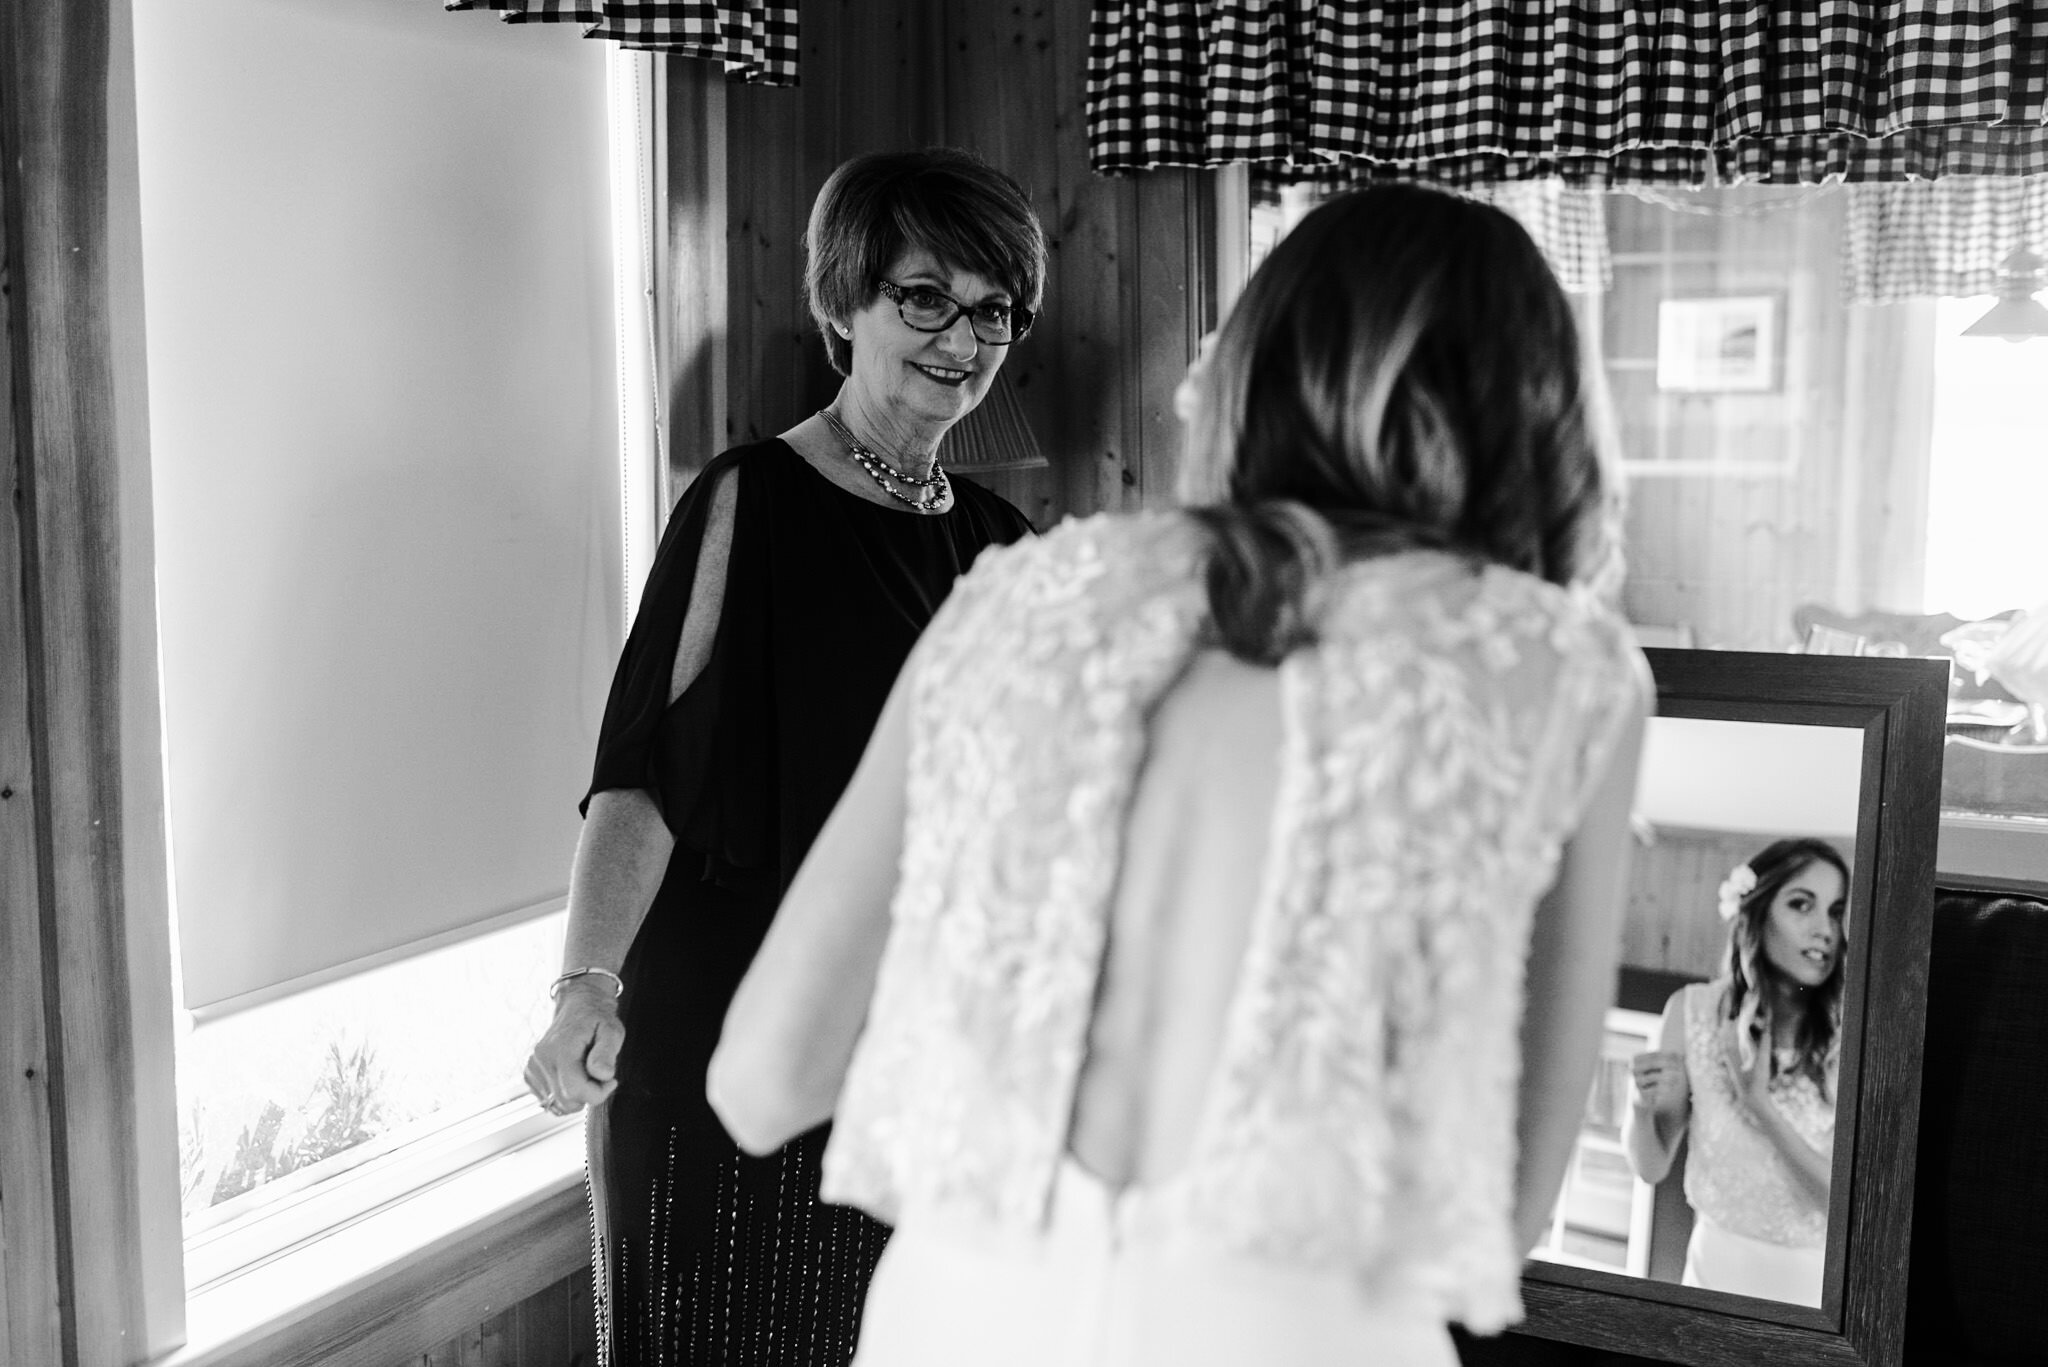 241-sisters-bride-getting-ready-candids-toronto-wedding-photography-new-brunswick.jpg